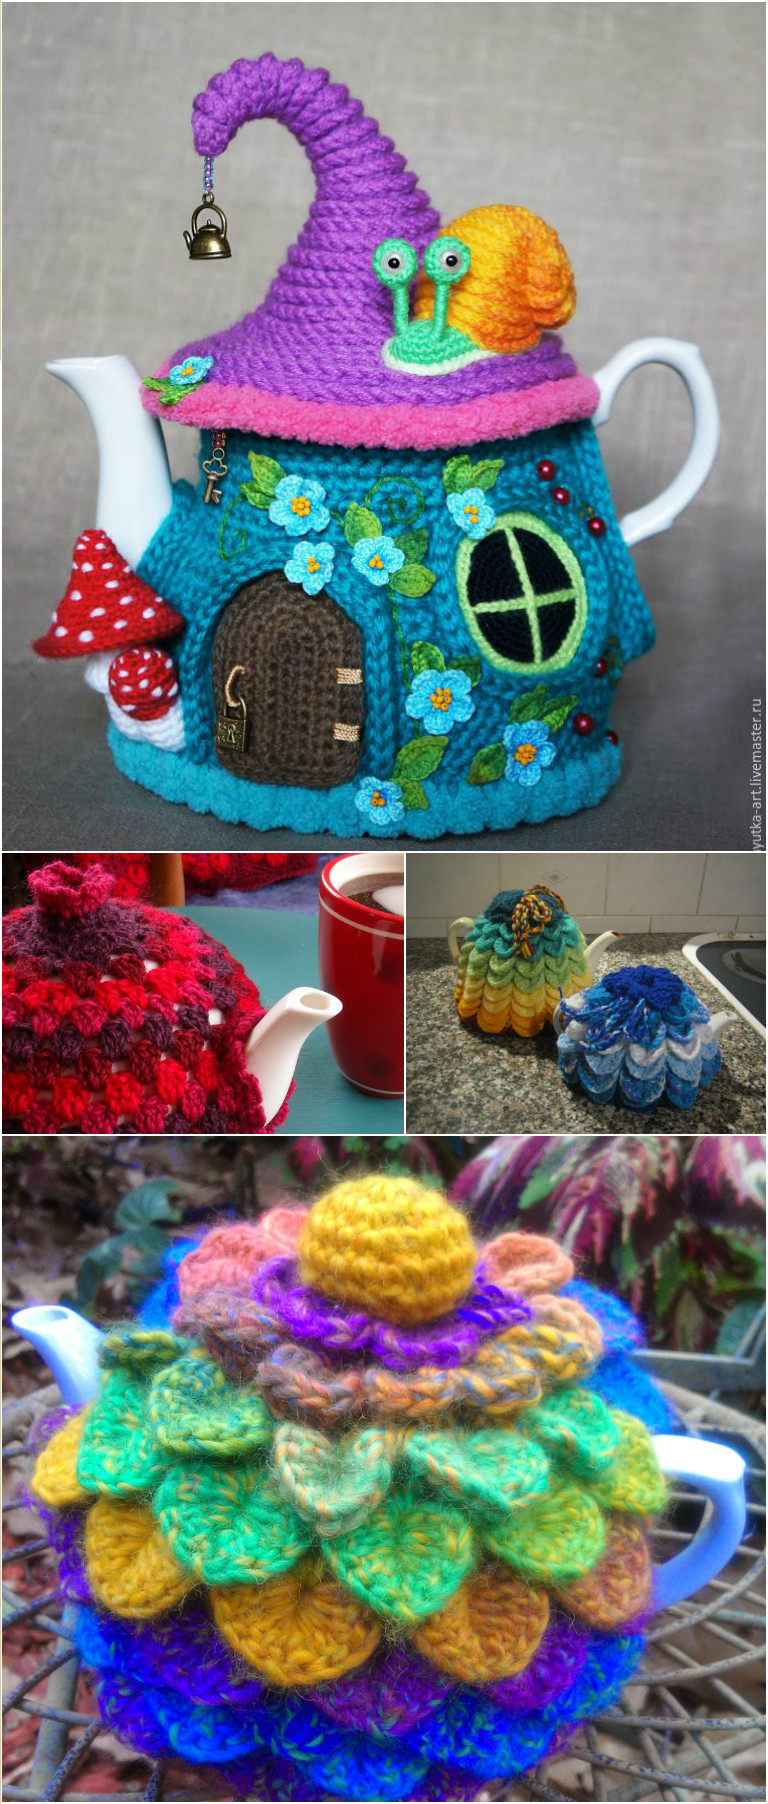 Tea Cozy Patterns To Knit These Fairy House Tea Cosy Patterns Are Absolutely Button Cute Pondic